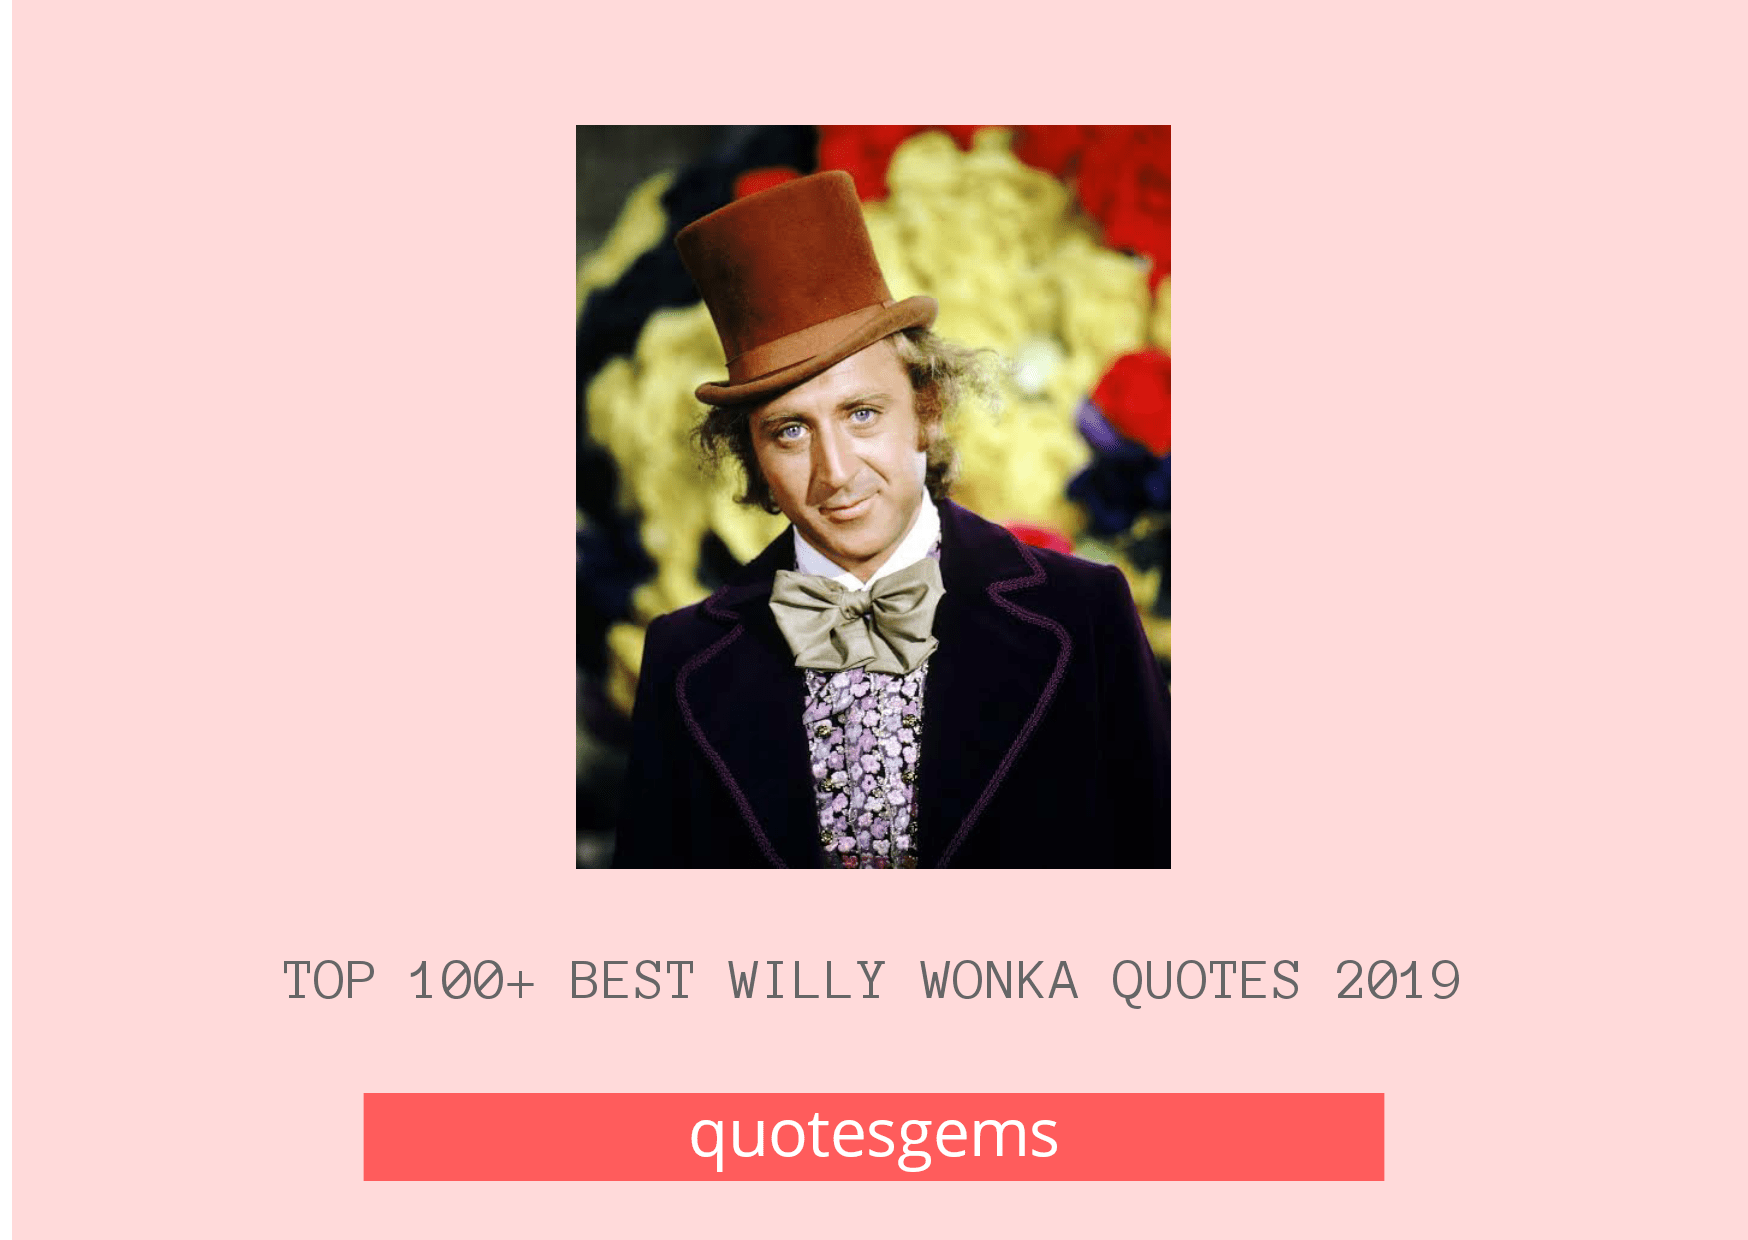 Willy Wonka Quotes 2019